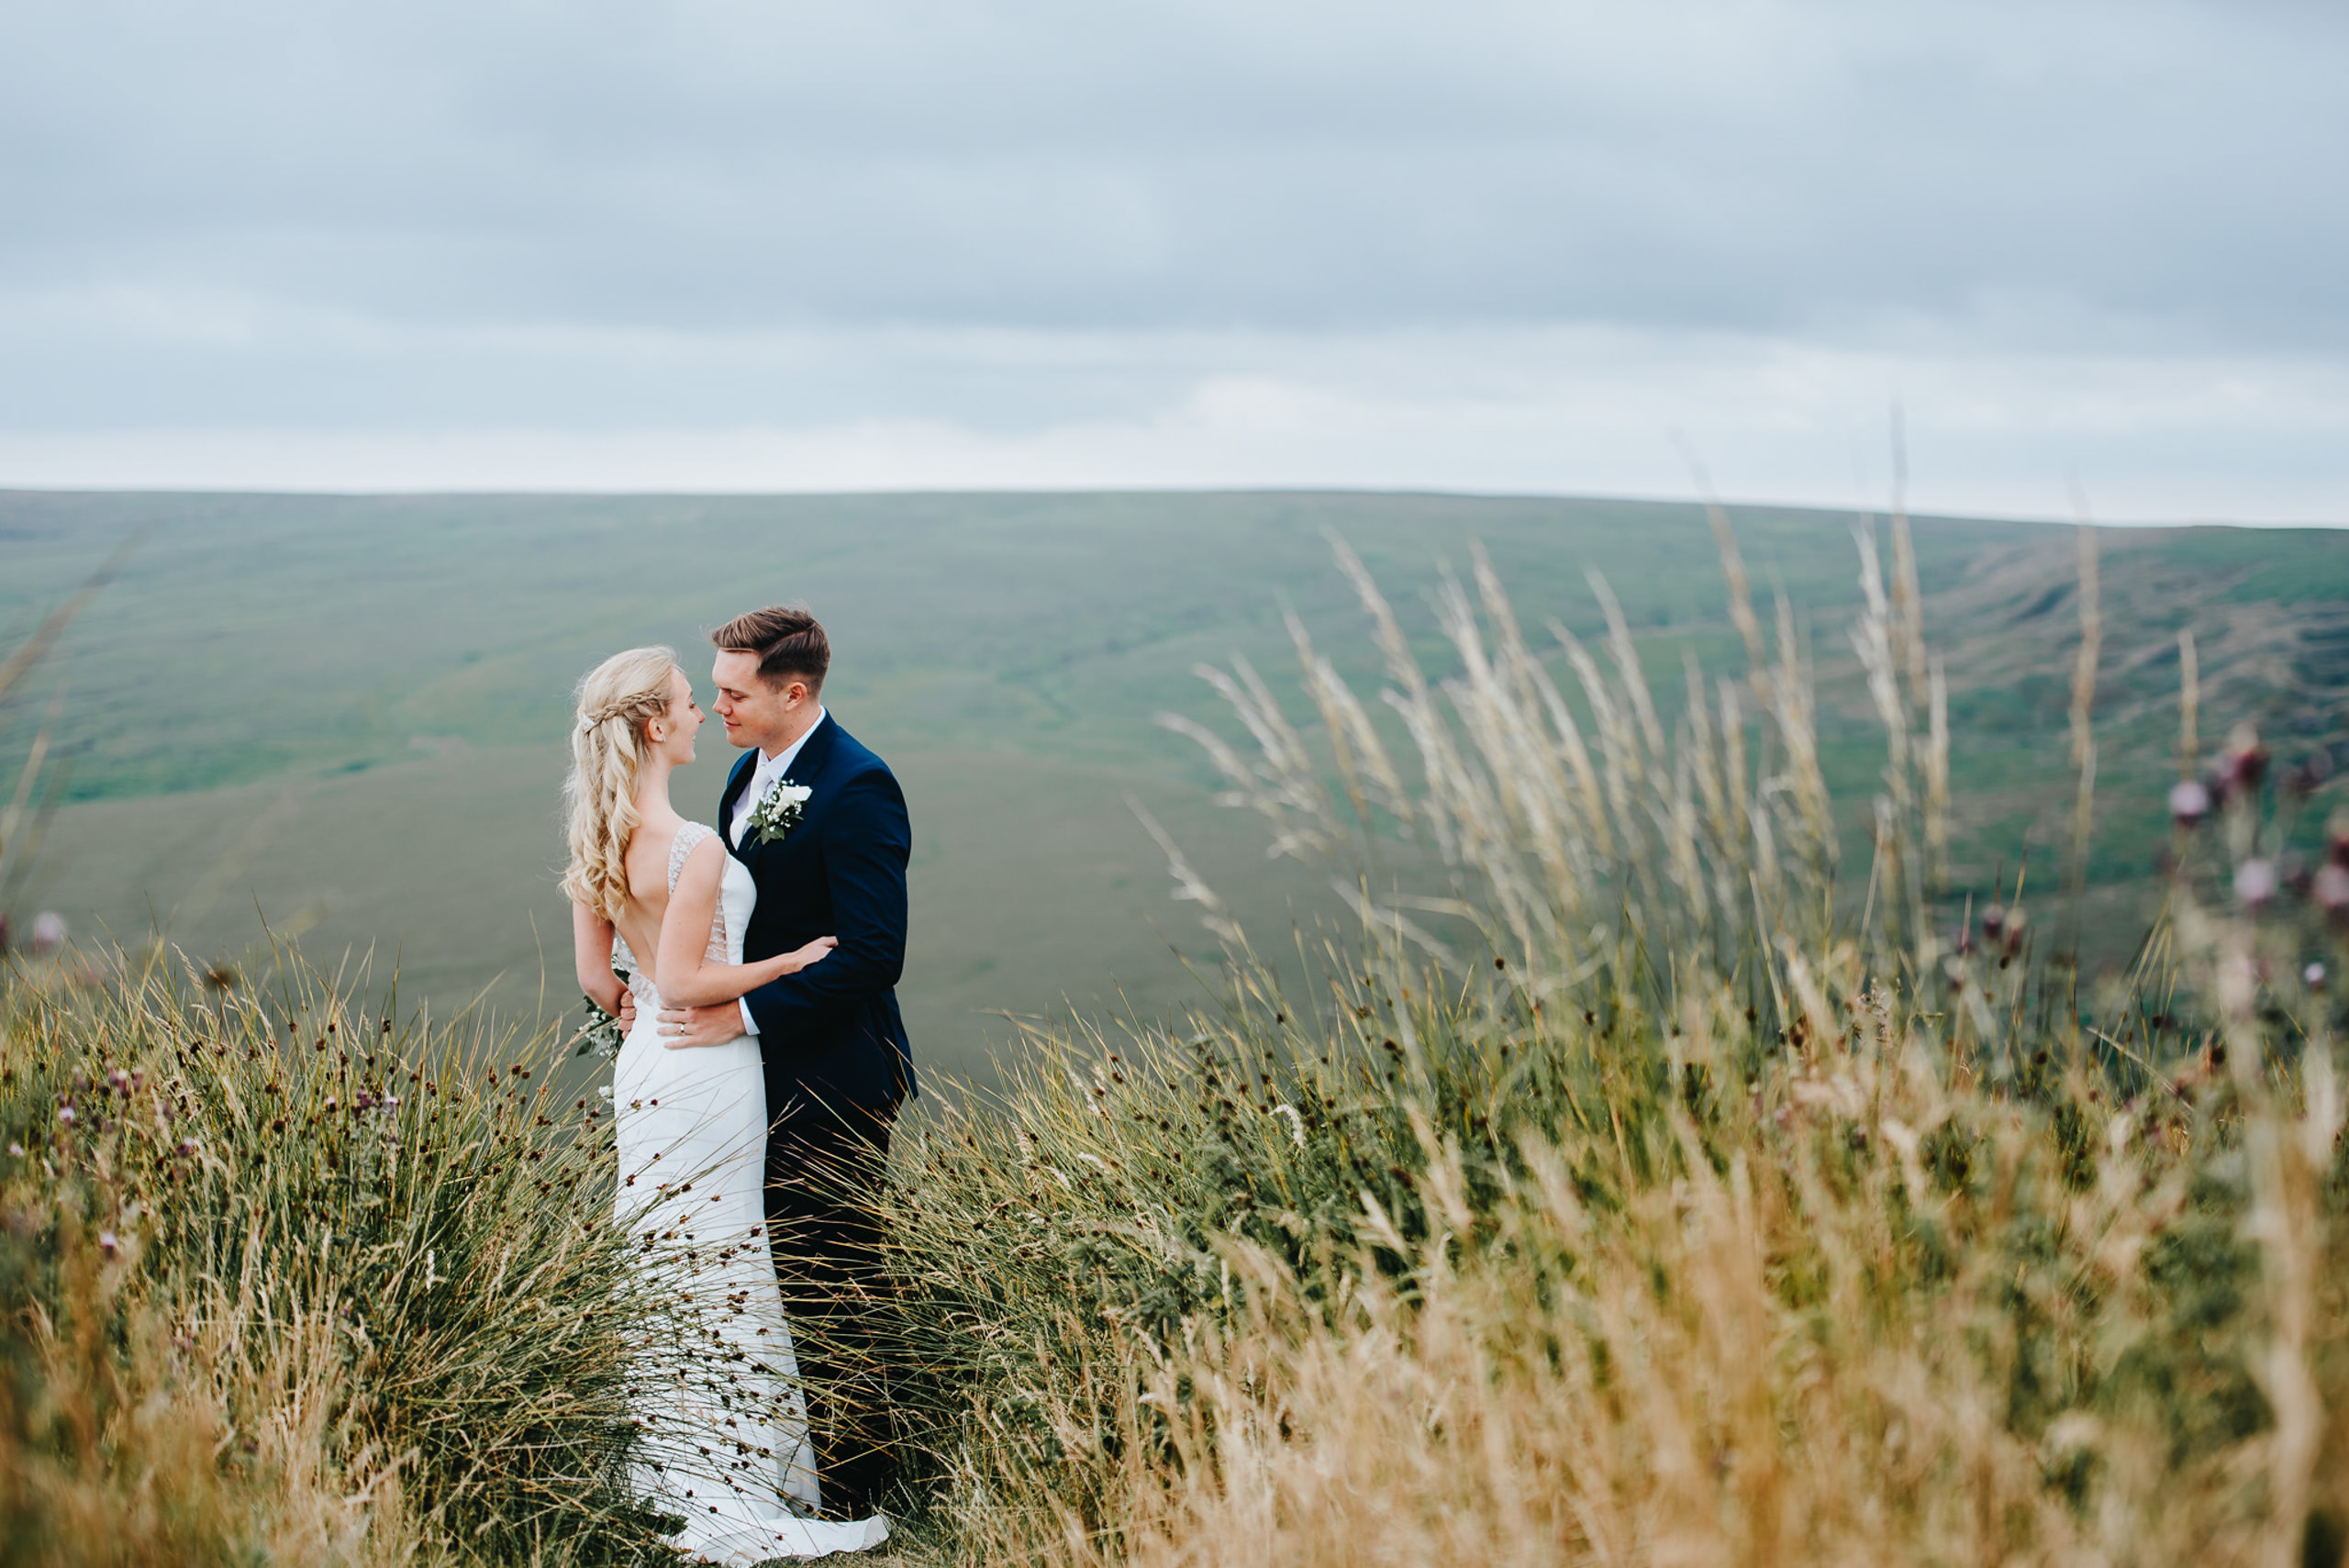 Turnpike Inn - Wedding Photography Huddersfield 7